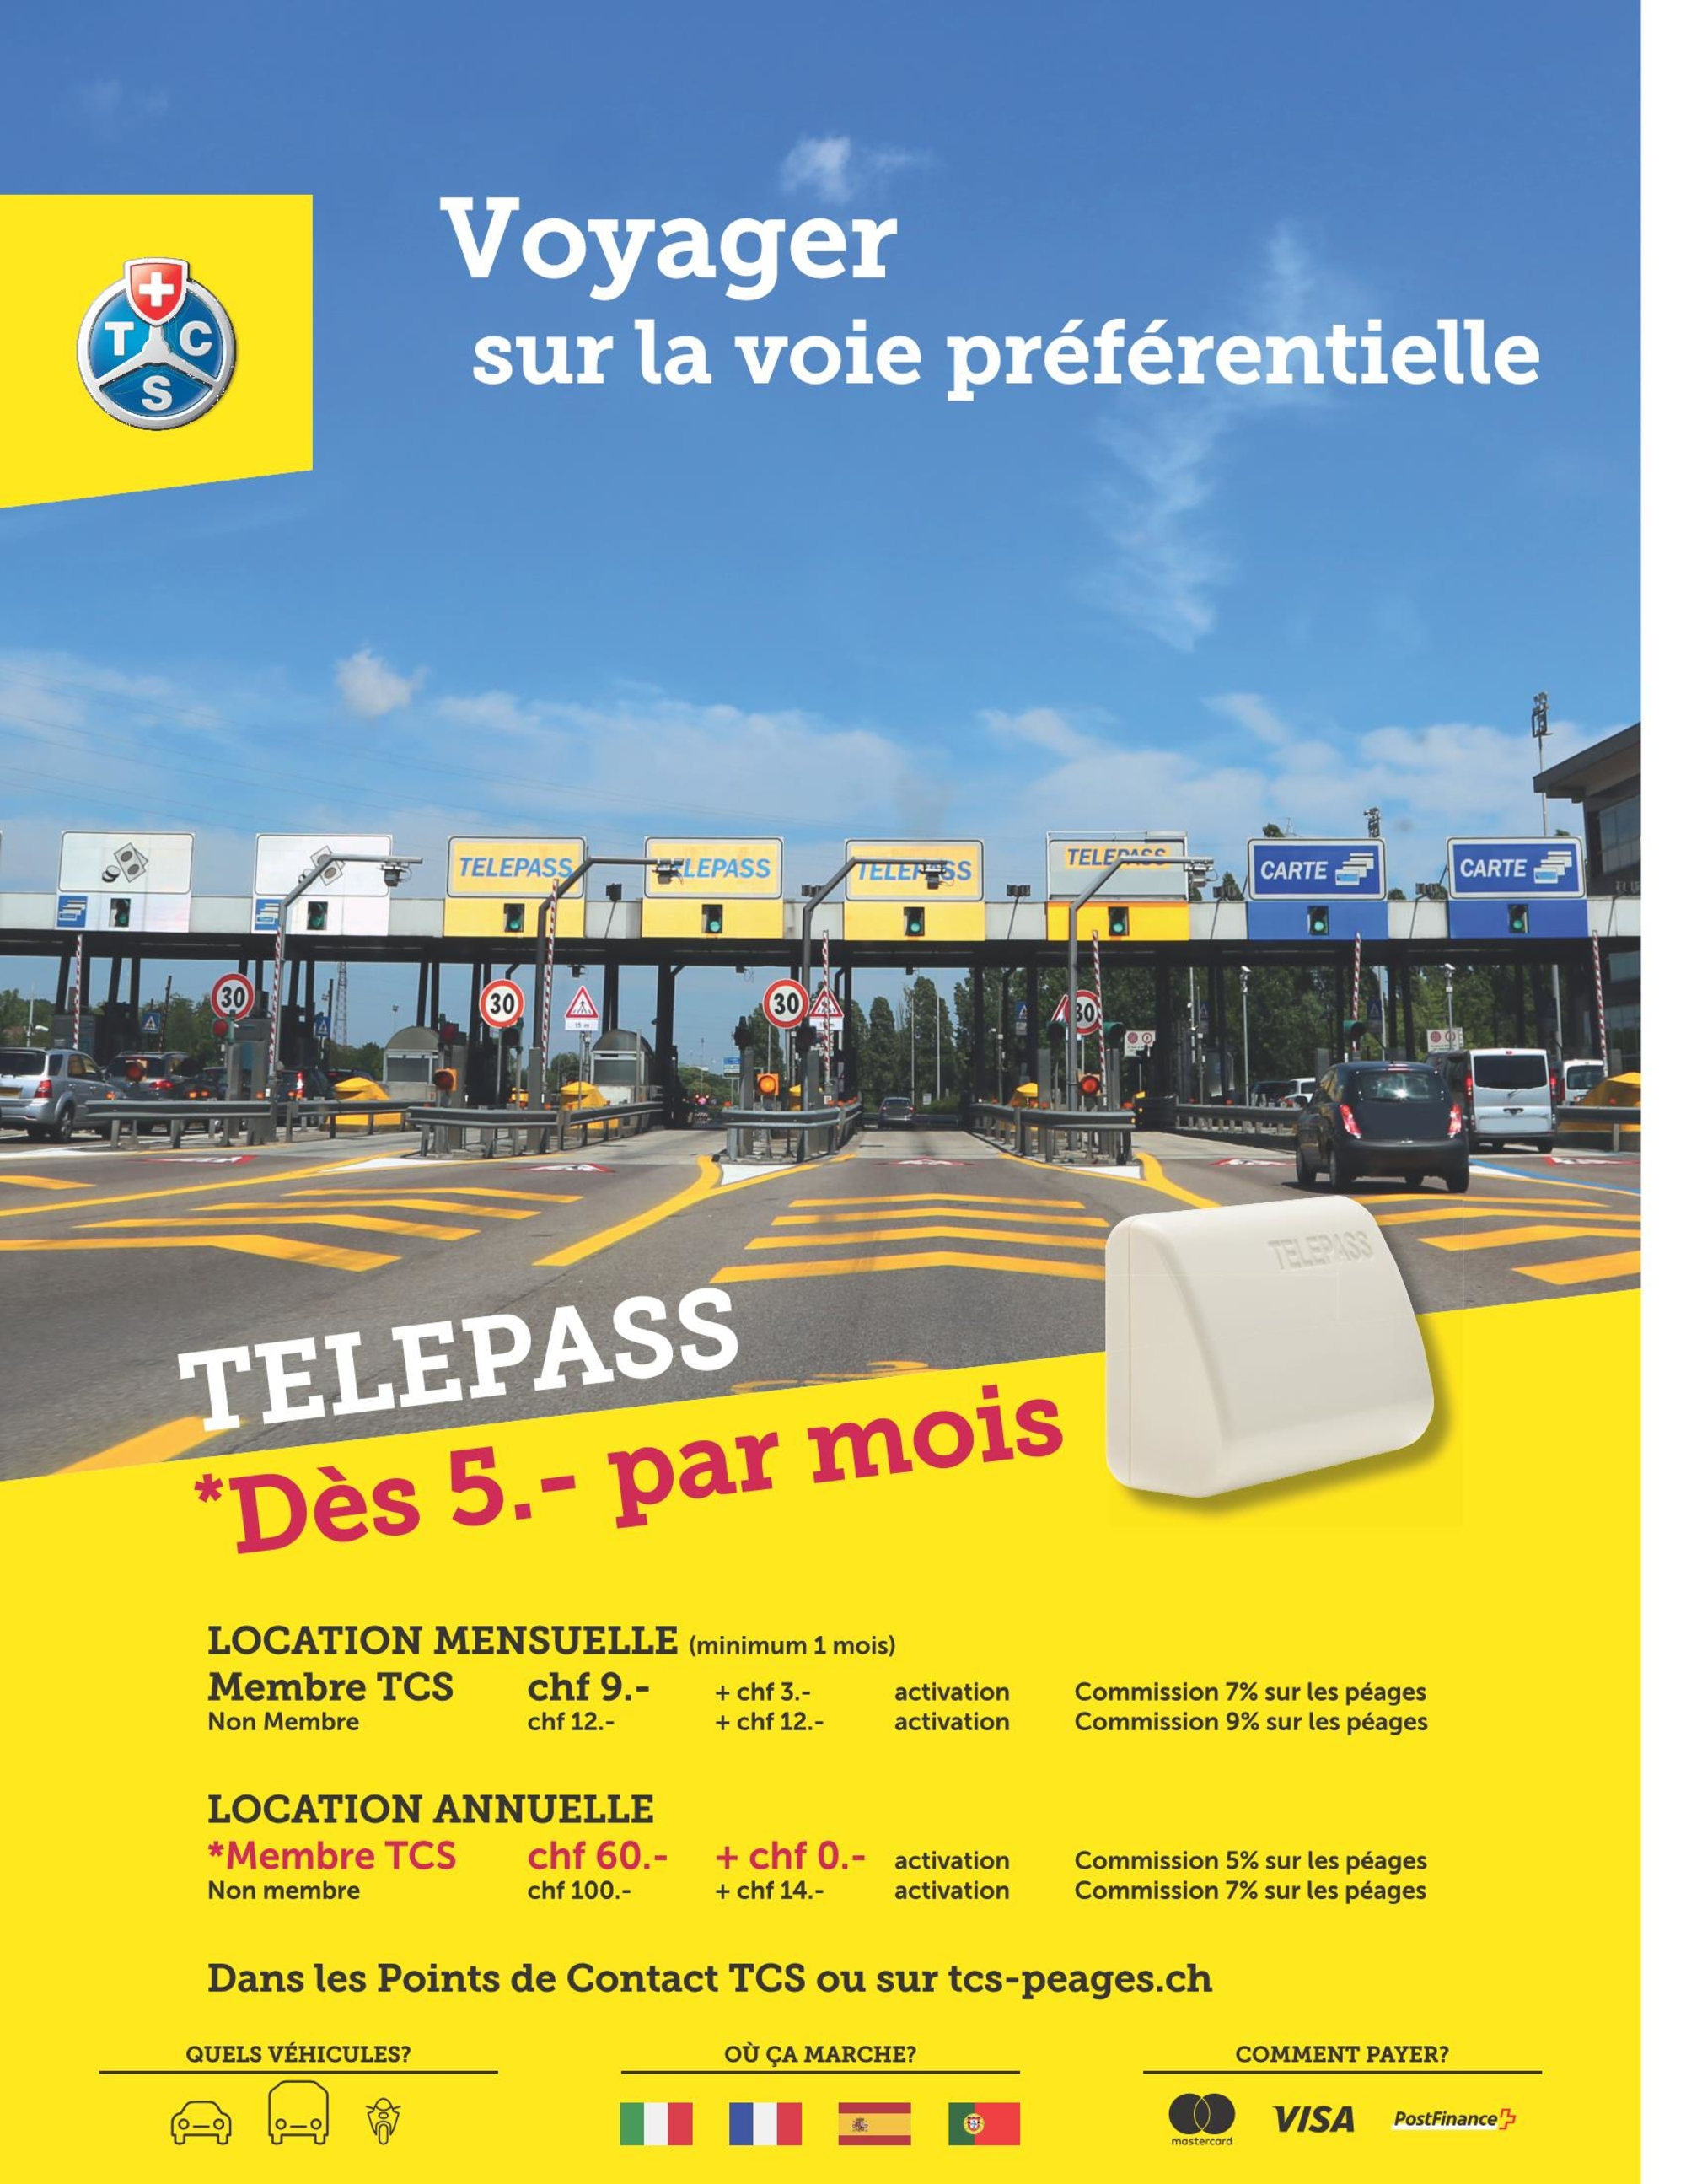 Telepeage 4 Pays Tcs Suisse